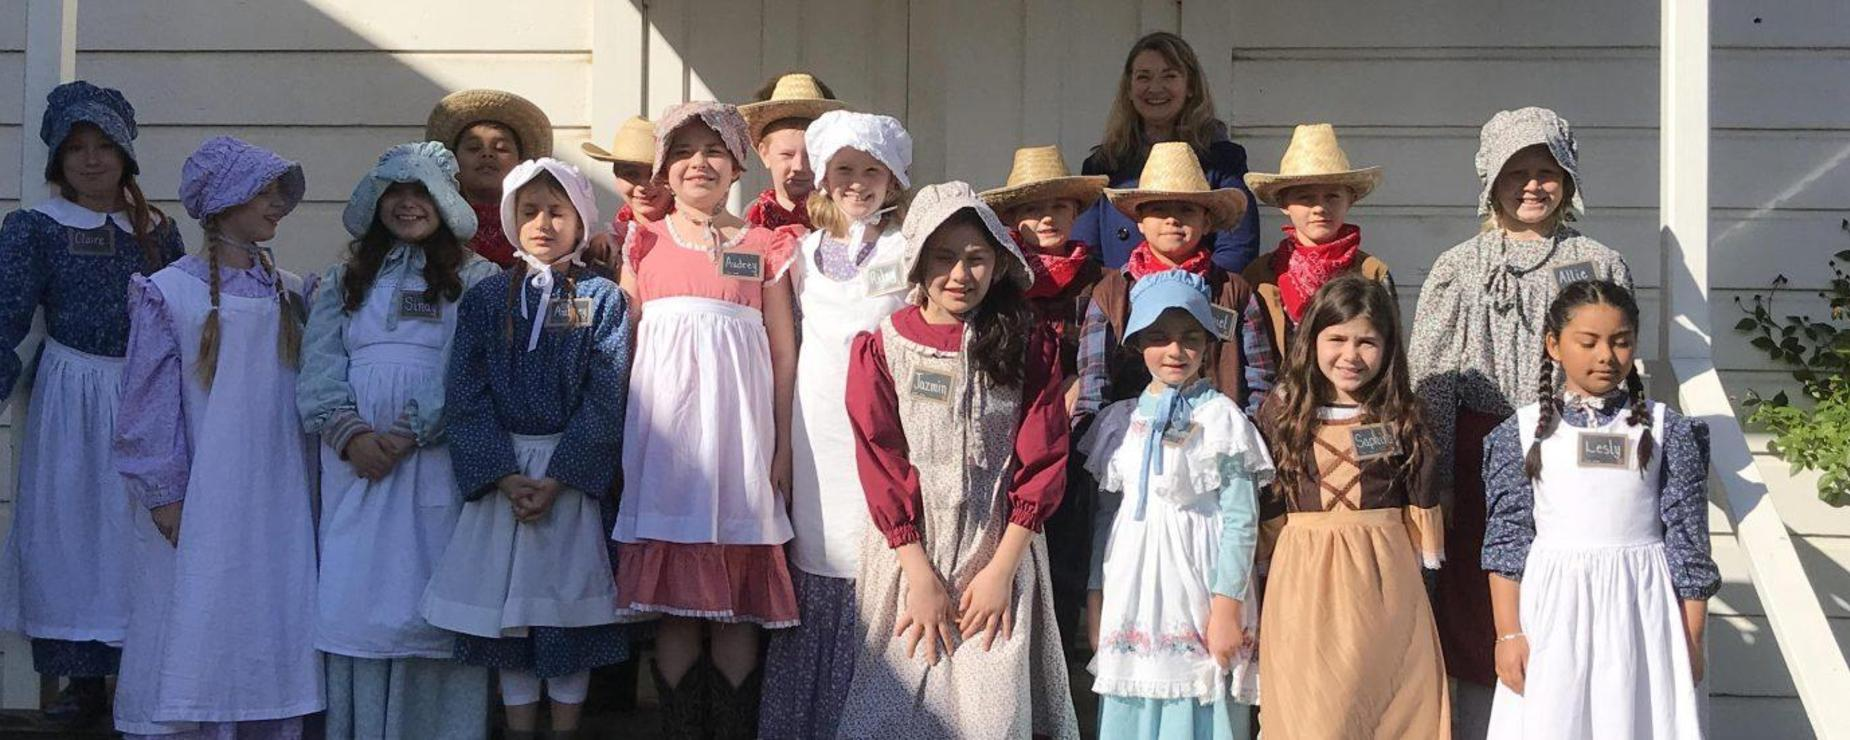 students in period dress